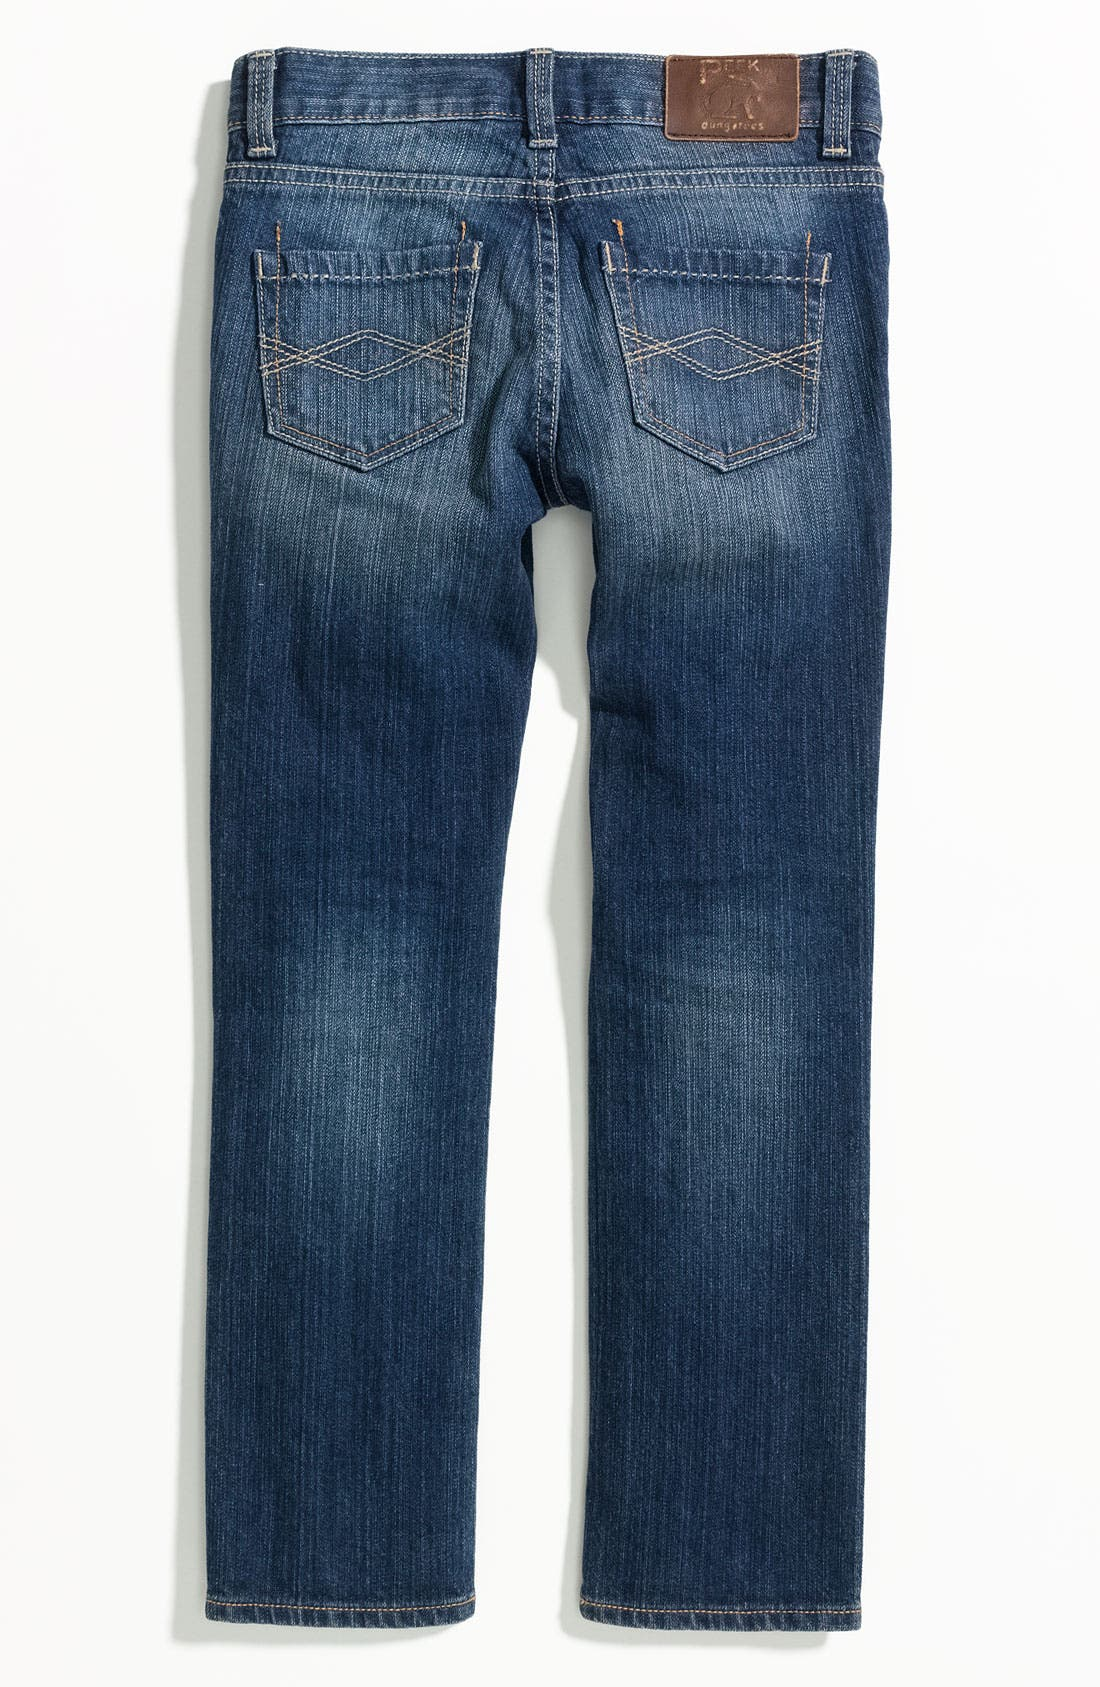 Alternate Image 1 Selected - Peek 'Audrey' Jeans (Toddler, Little Girls & Big Girls)